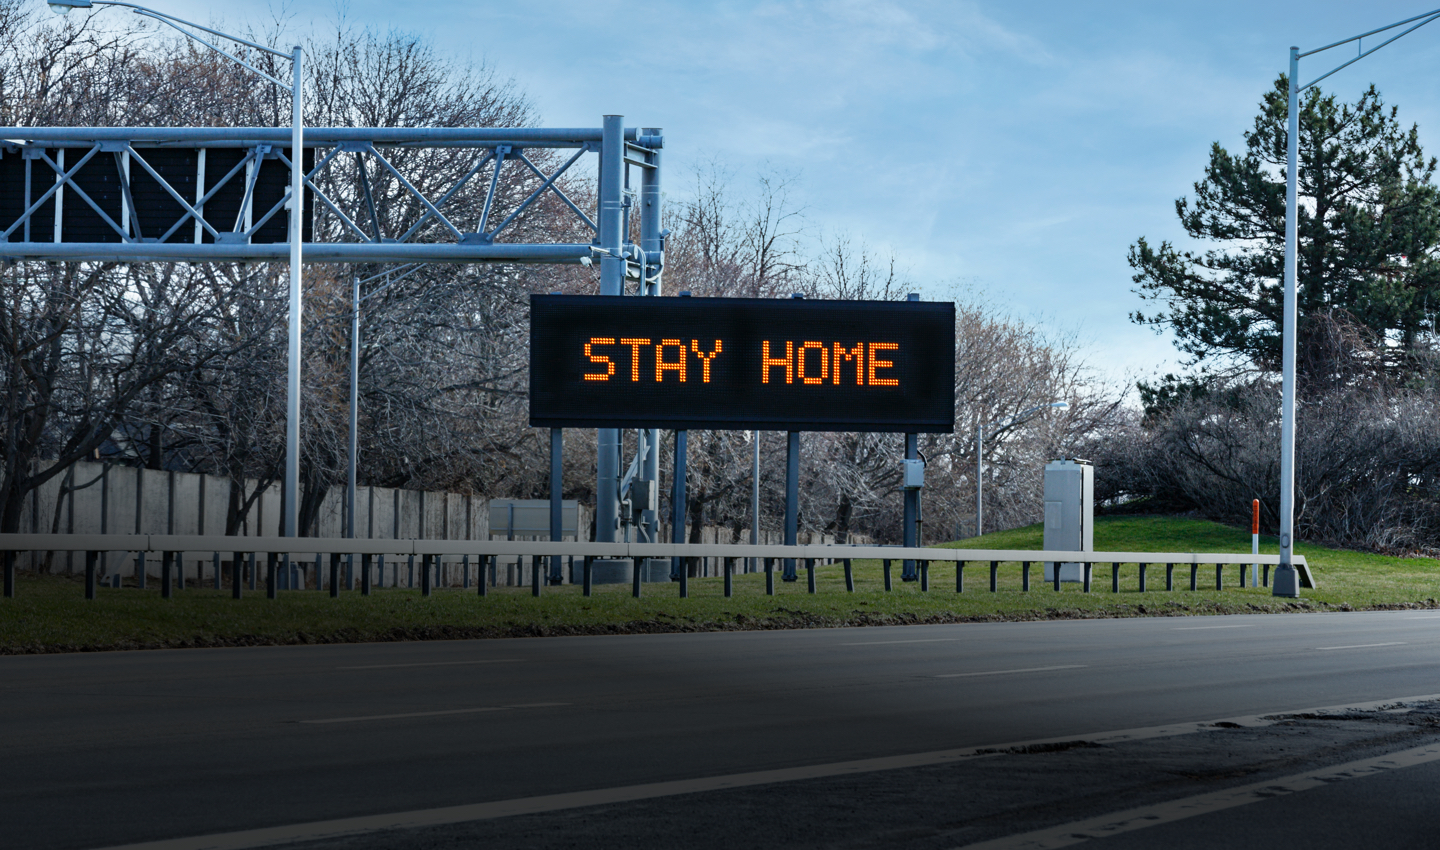 Stay home header